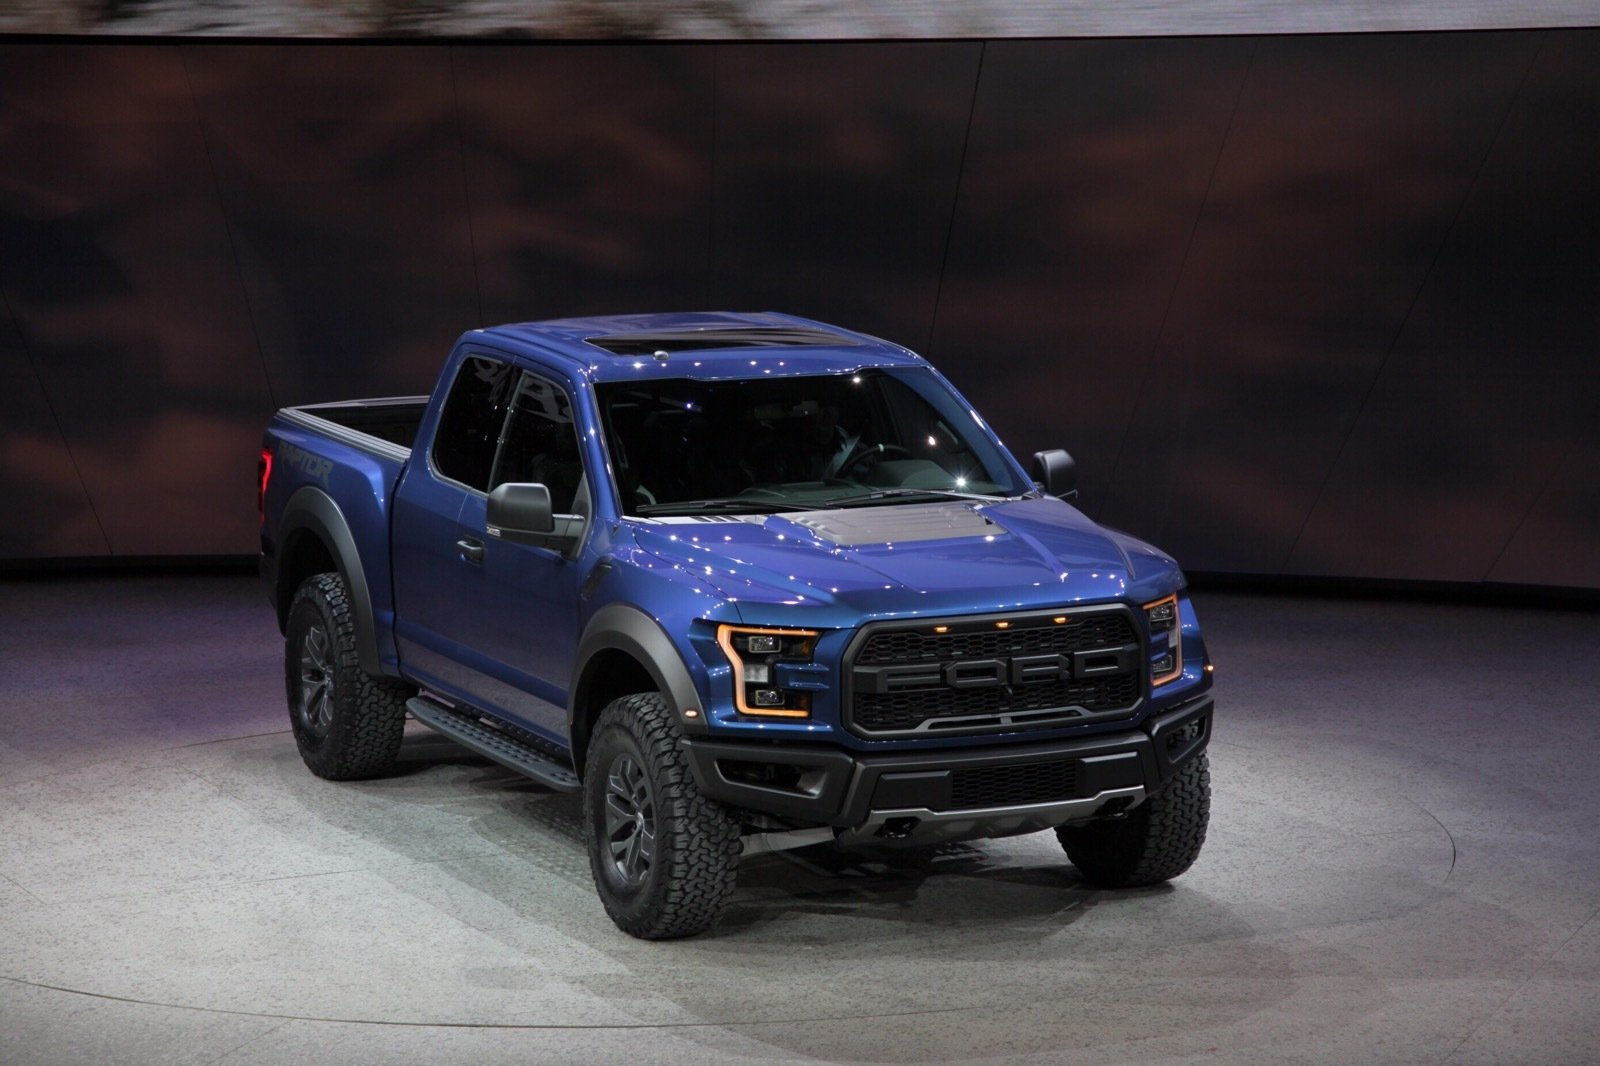 2017 ford f 150 raptor picture 610316 truck review top speed. Black Bedroom Furniture Sets. Home Design Ideas